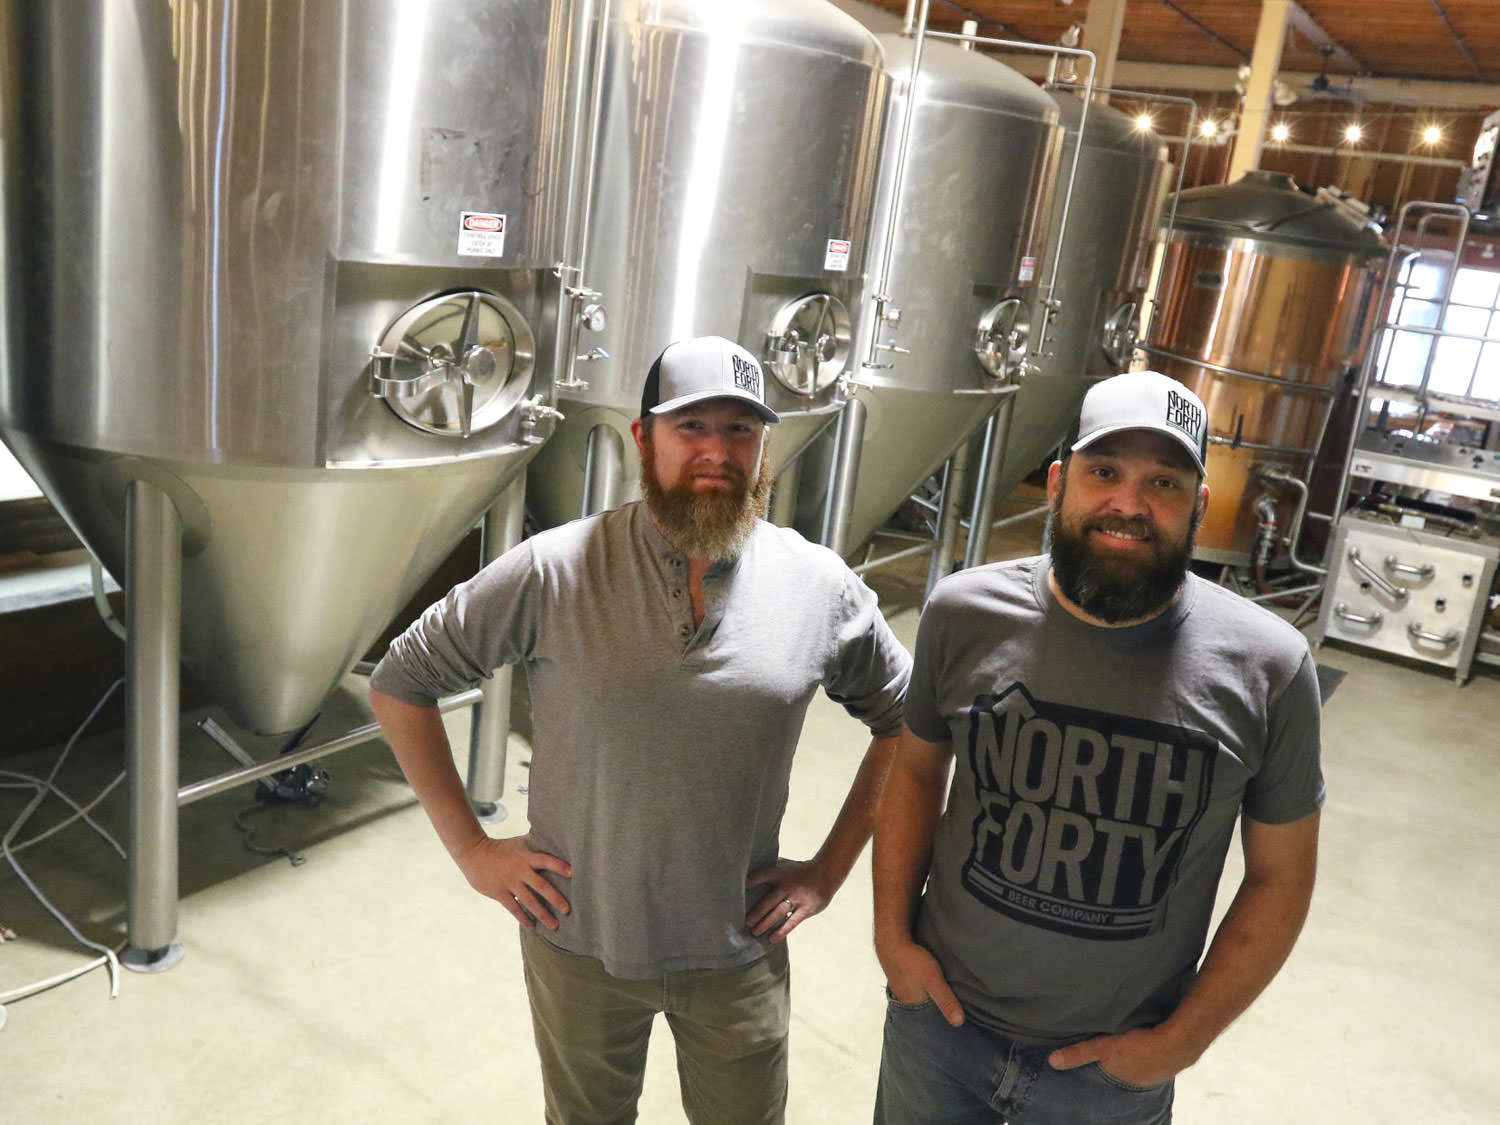 North Forty owners R.J. Mills and Arin Forrest smile for the camera in front of large brewing containers.